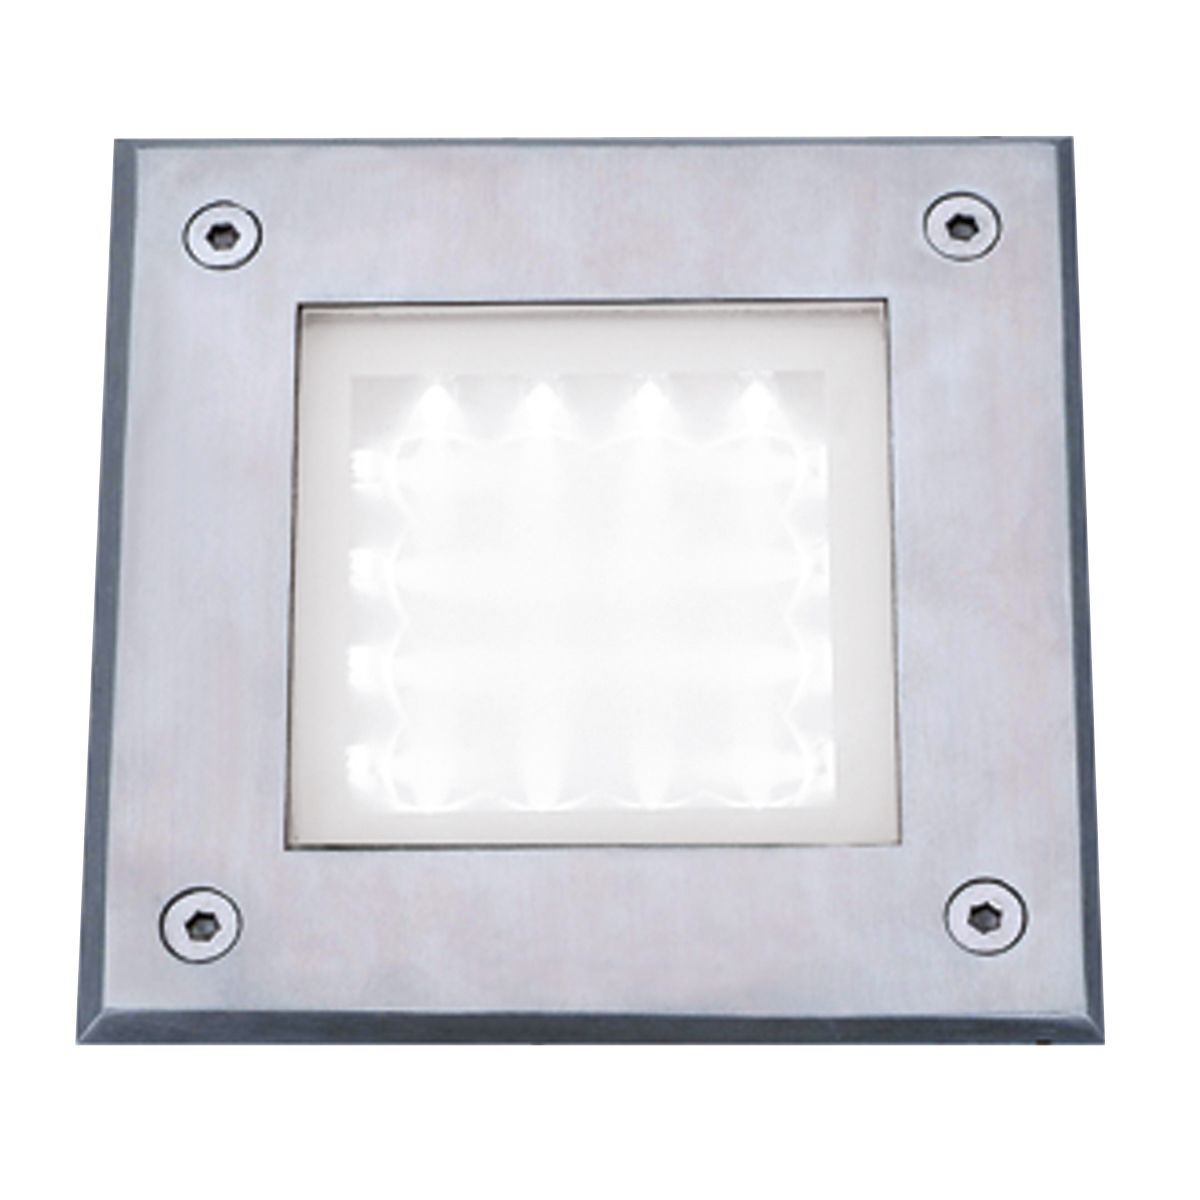 Stainless Steel Ip68 16 Led Recessed Square Walkover With White Led Light